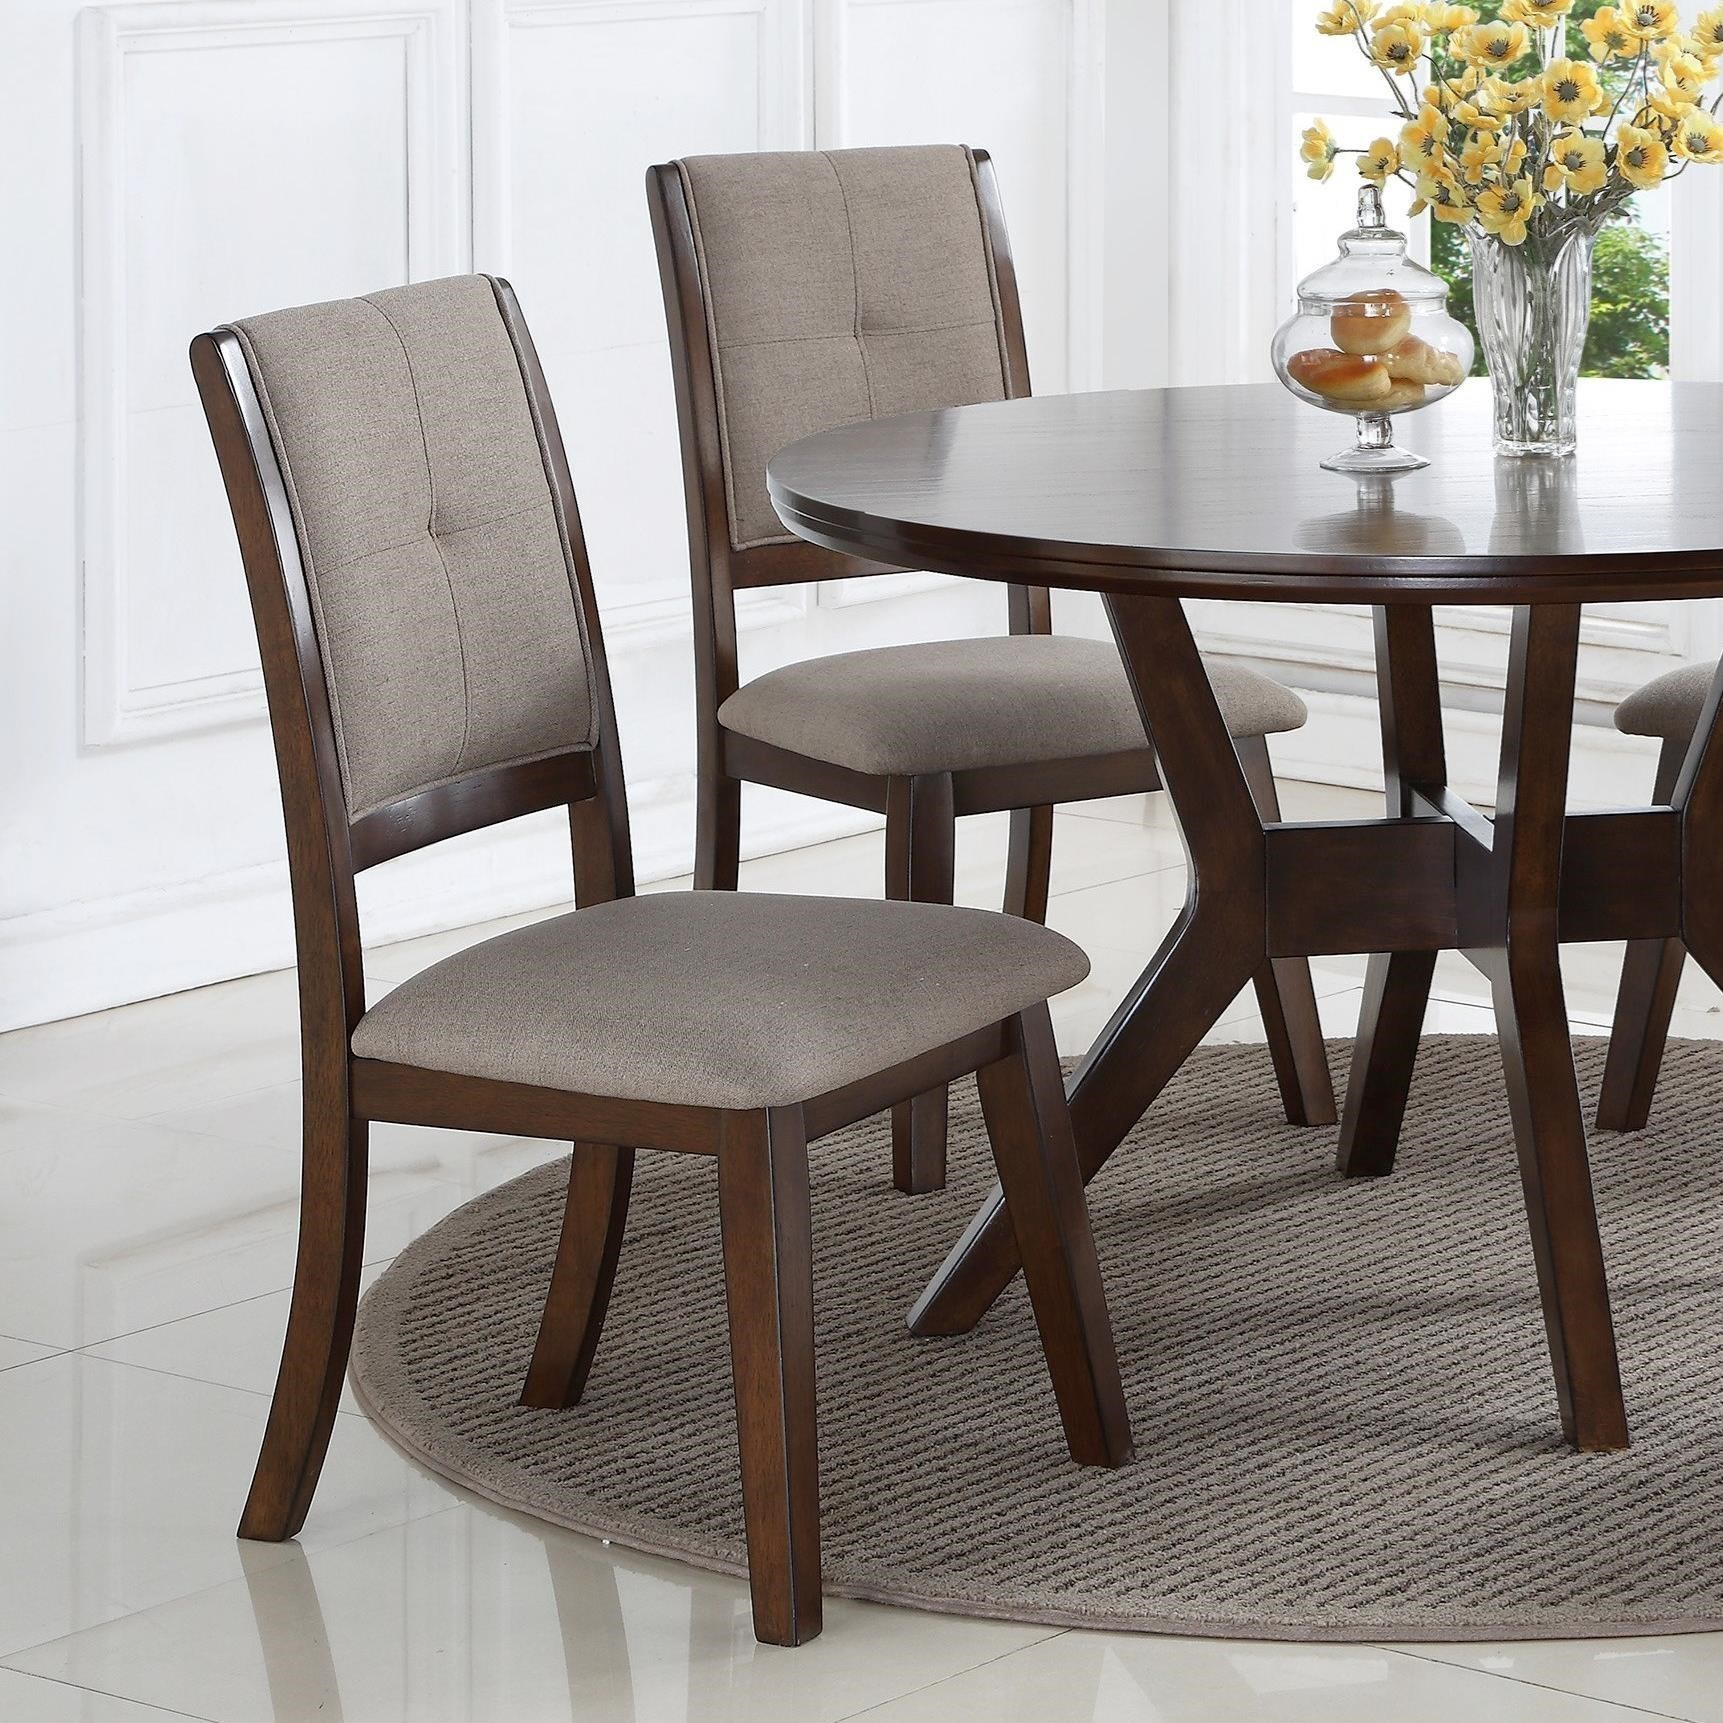 Crown Chair Crown Mark Barney Upholstered Dining Chair Royal